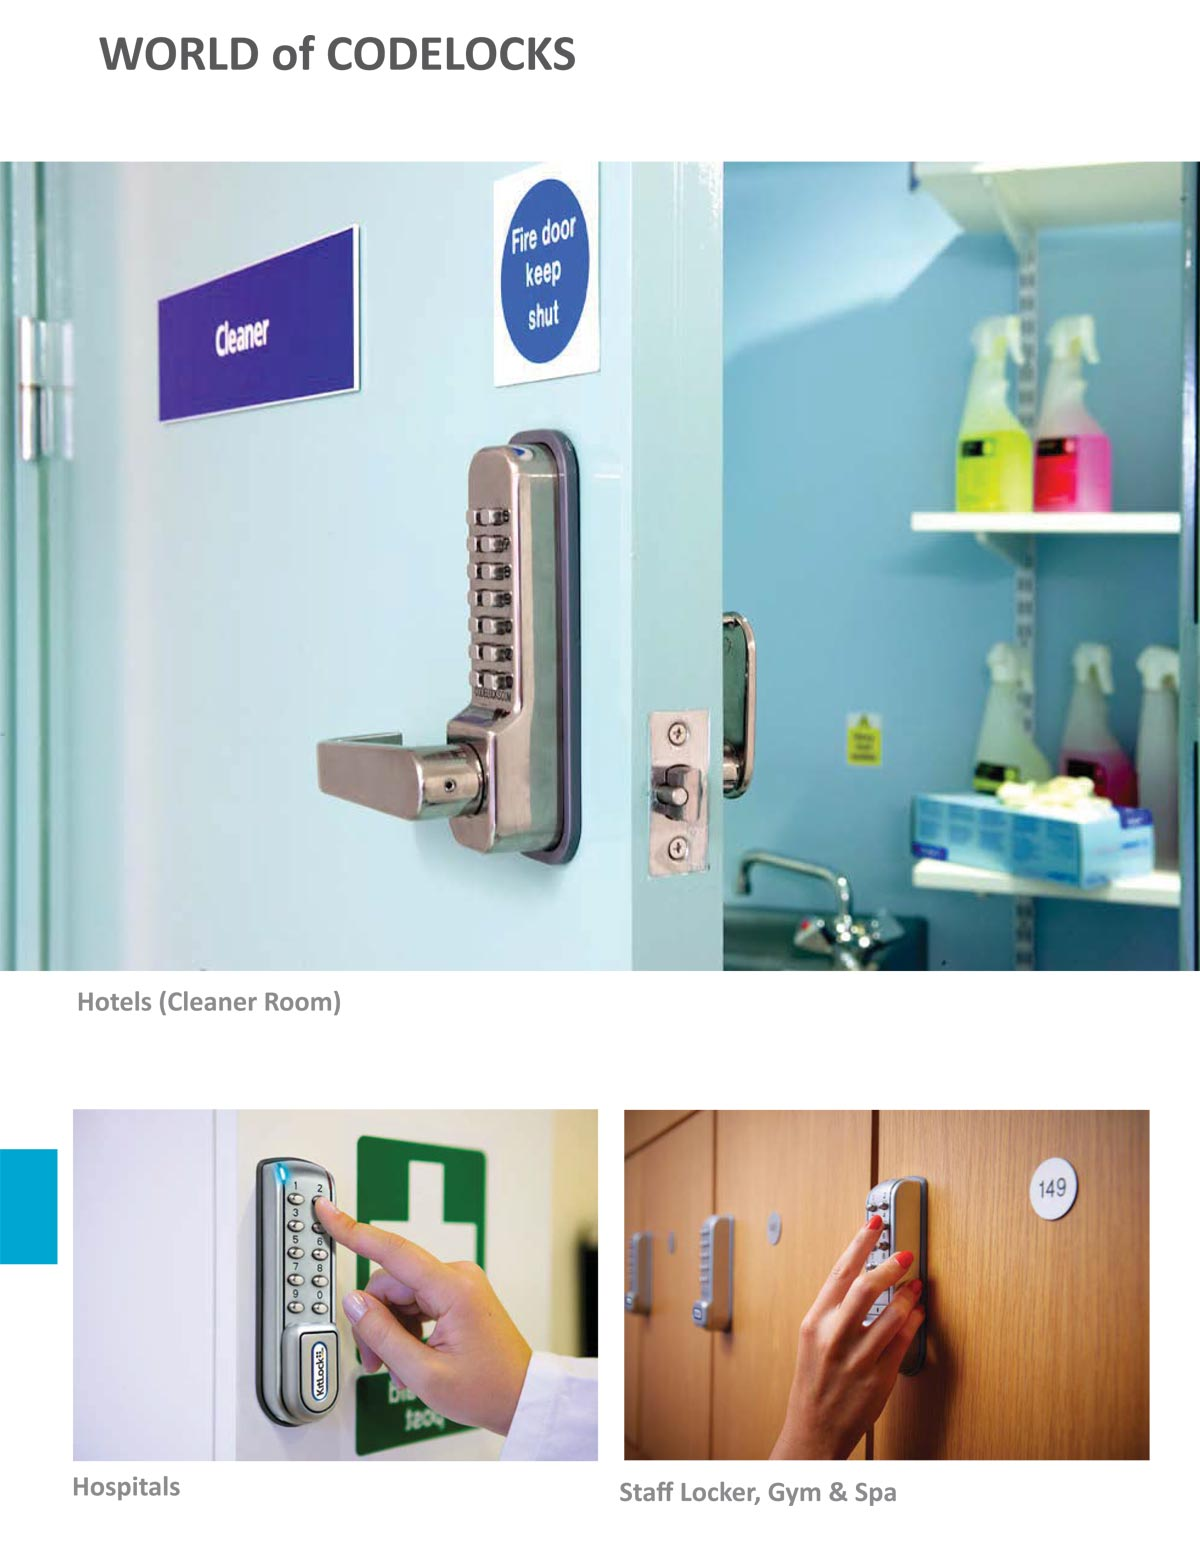 codelock, pin lock, password lock, locker gym spa lock, outdoor fence lock, furniture lock, mechanical code lock, electronic code lock, smart card lock, bluetooth lock, keycard lock, Fortress Land Security Company Yangon, Myanmar